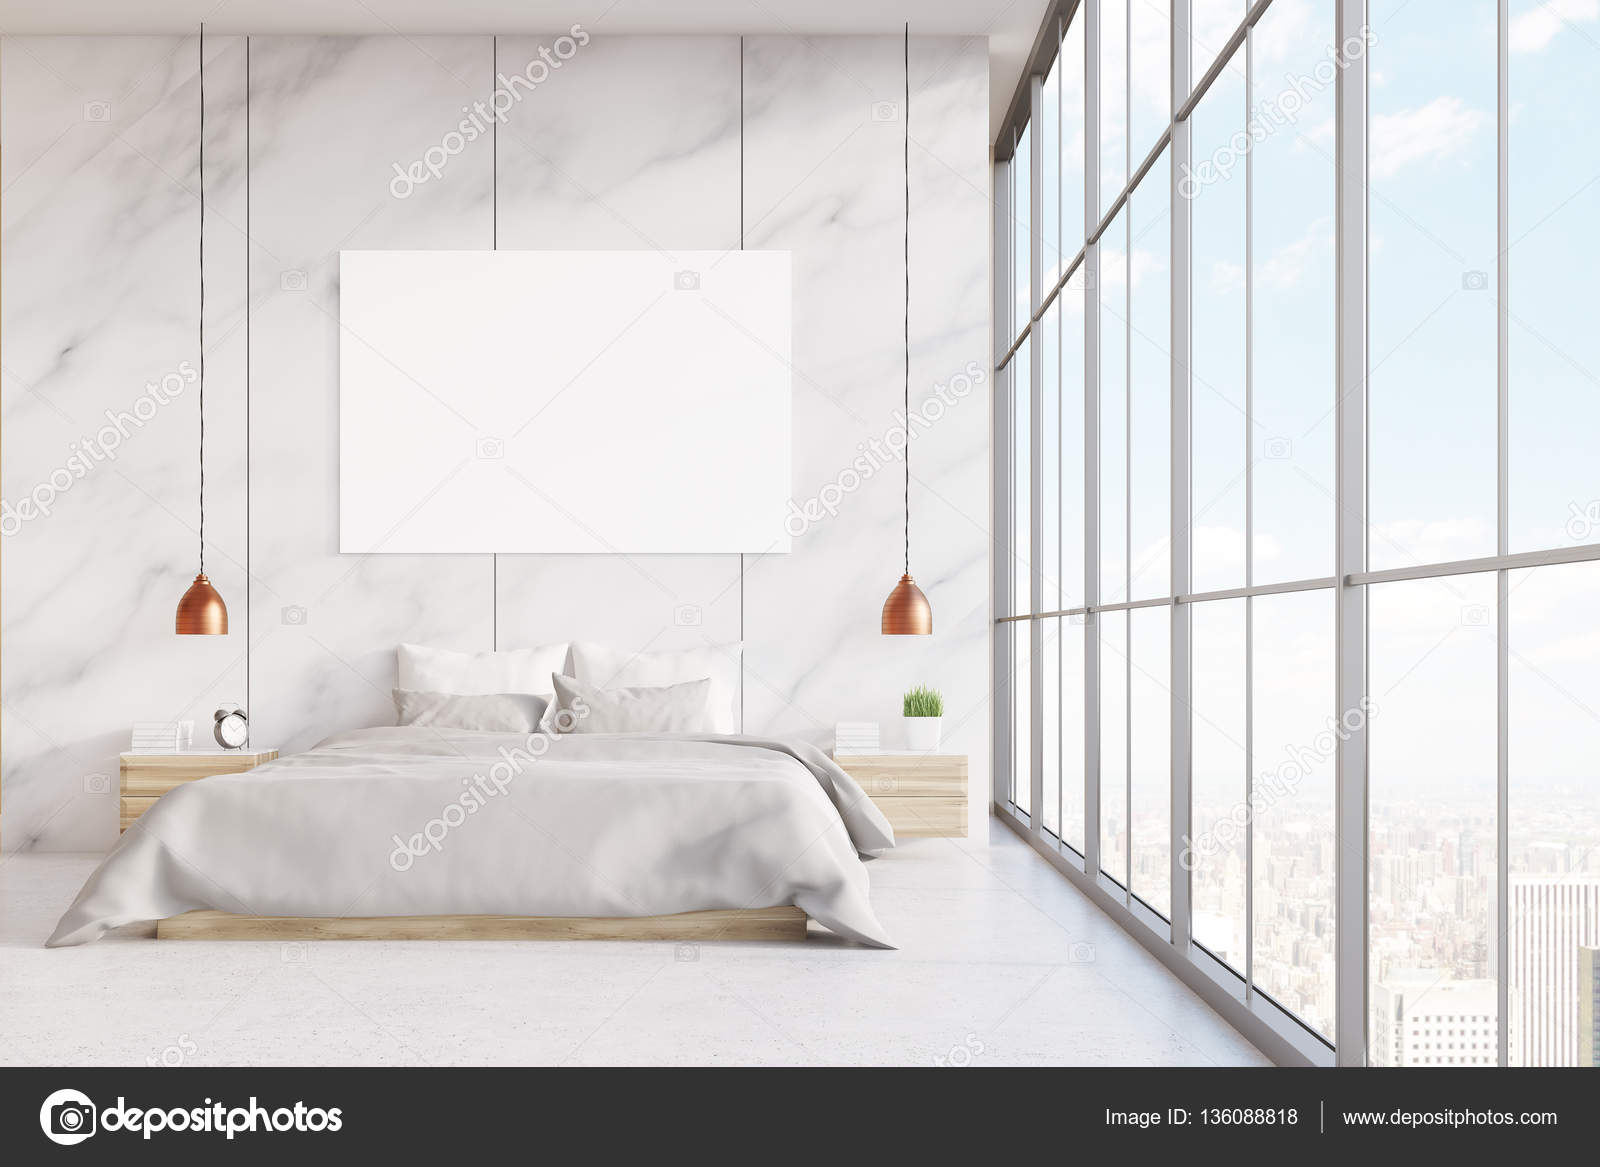 front view of a bedroom interior with a king size bed marble walls panoramic window and a horizontal poster 3d rendering mock up